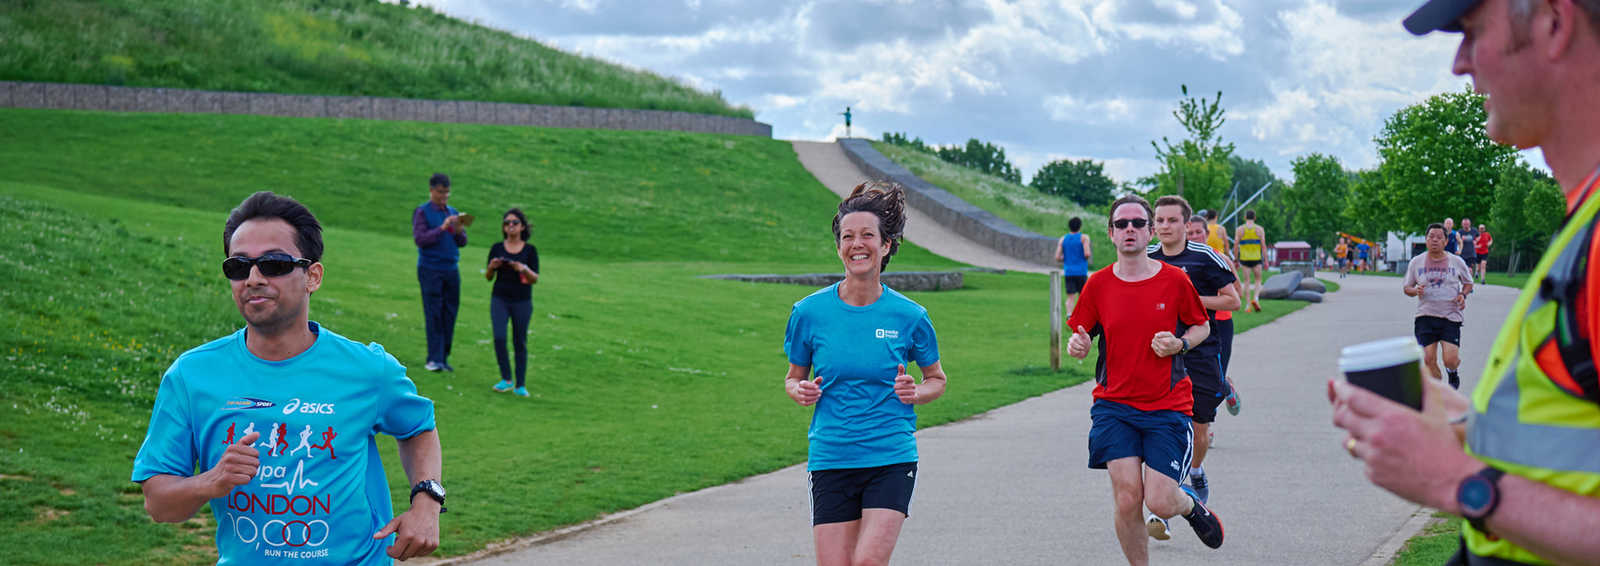 parkrun UK partnership